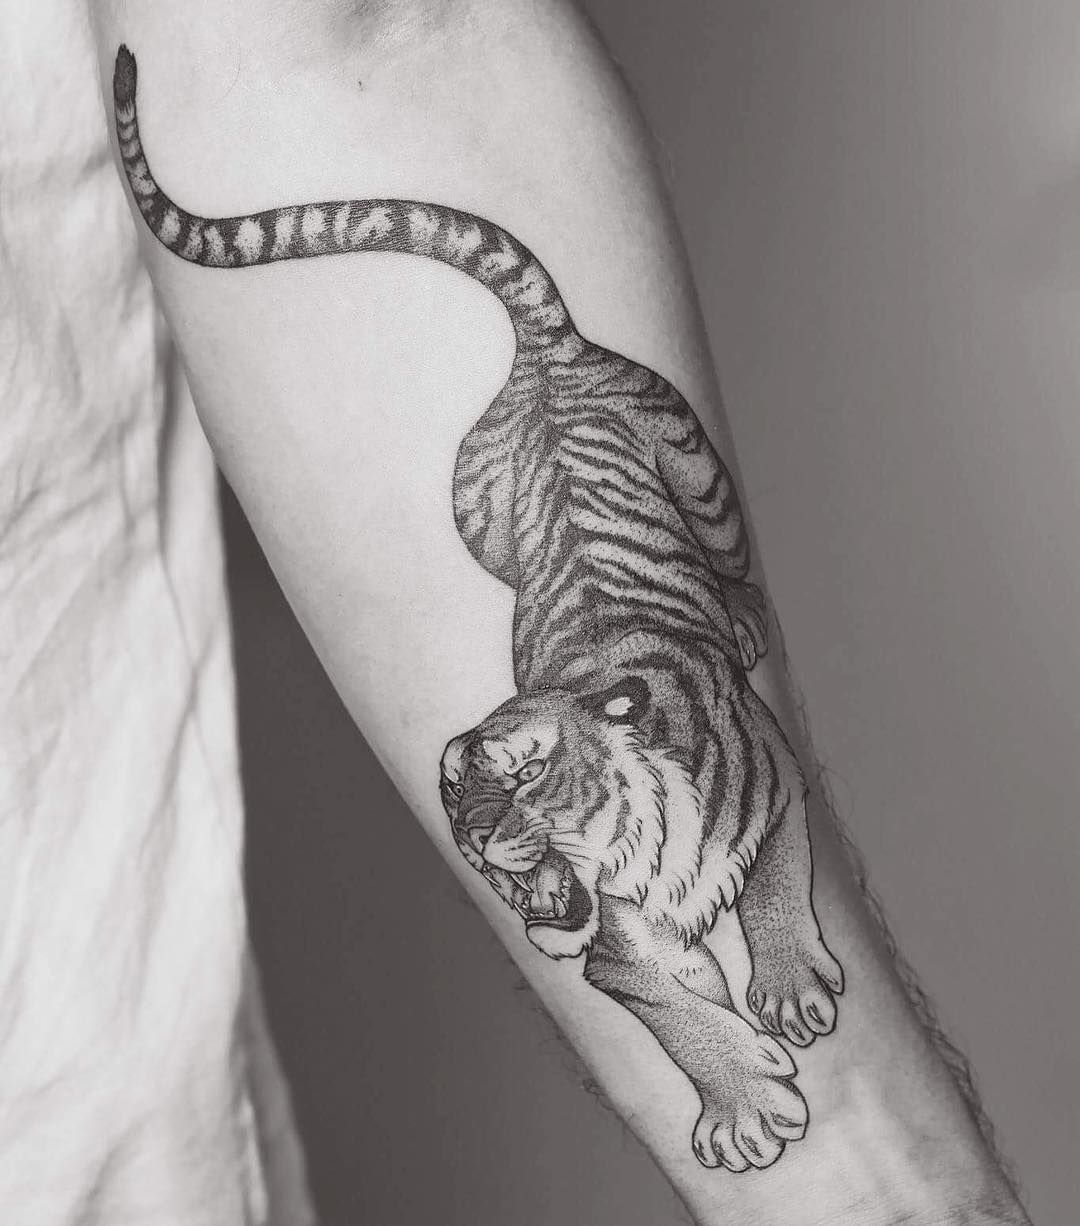 Tiger tattoos meaning and design ideas tiger tattoo tigers and tiger tattoos meaning and design ideas biocorpaavc